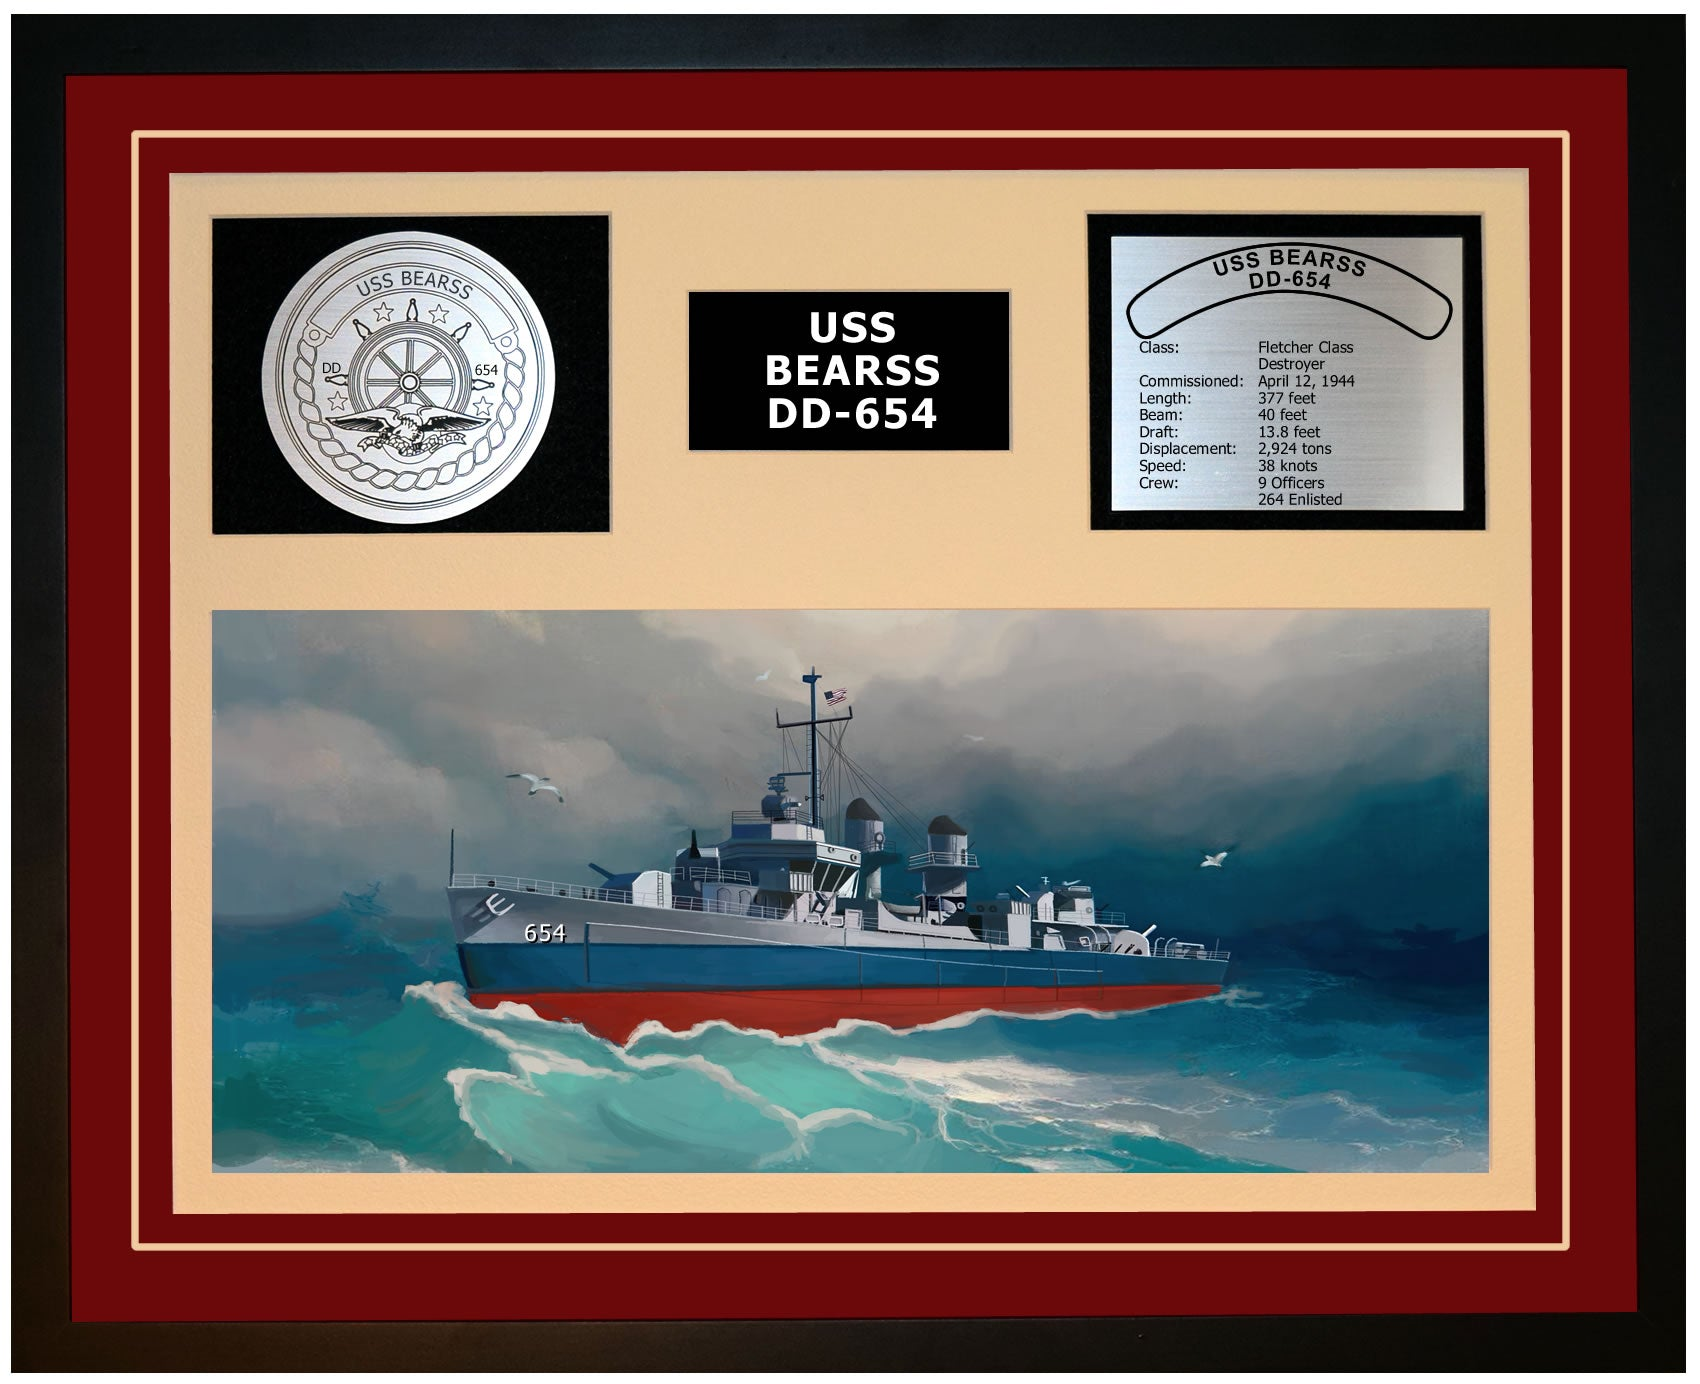 USS BEARSS DD-654 Framed Navy Ship Display Burgundy